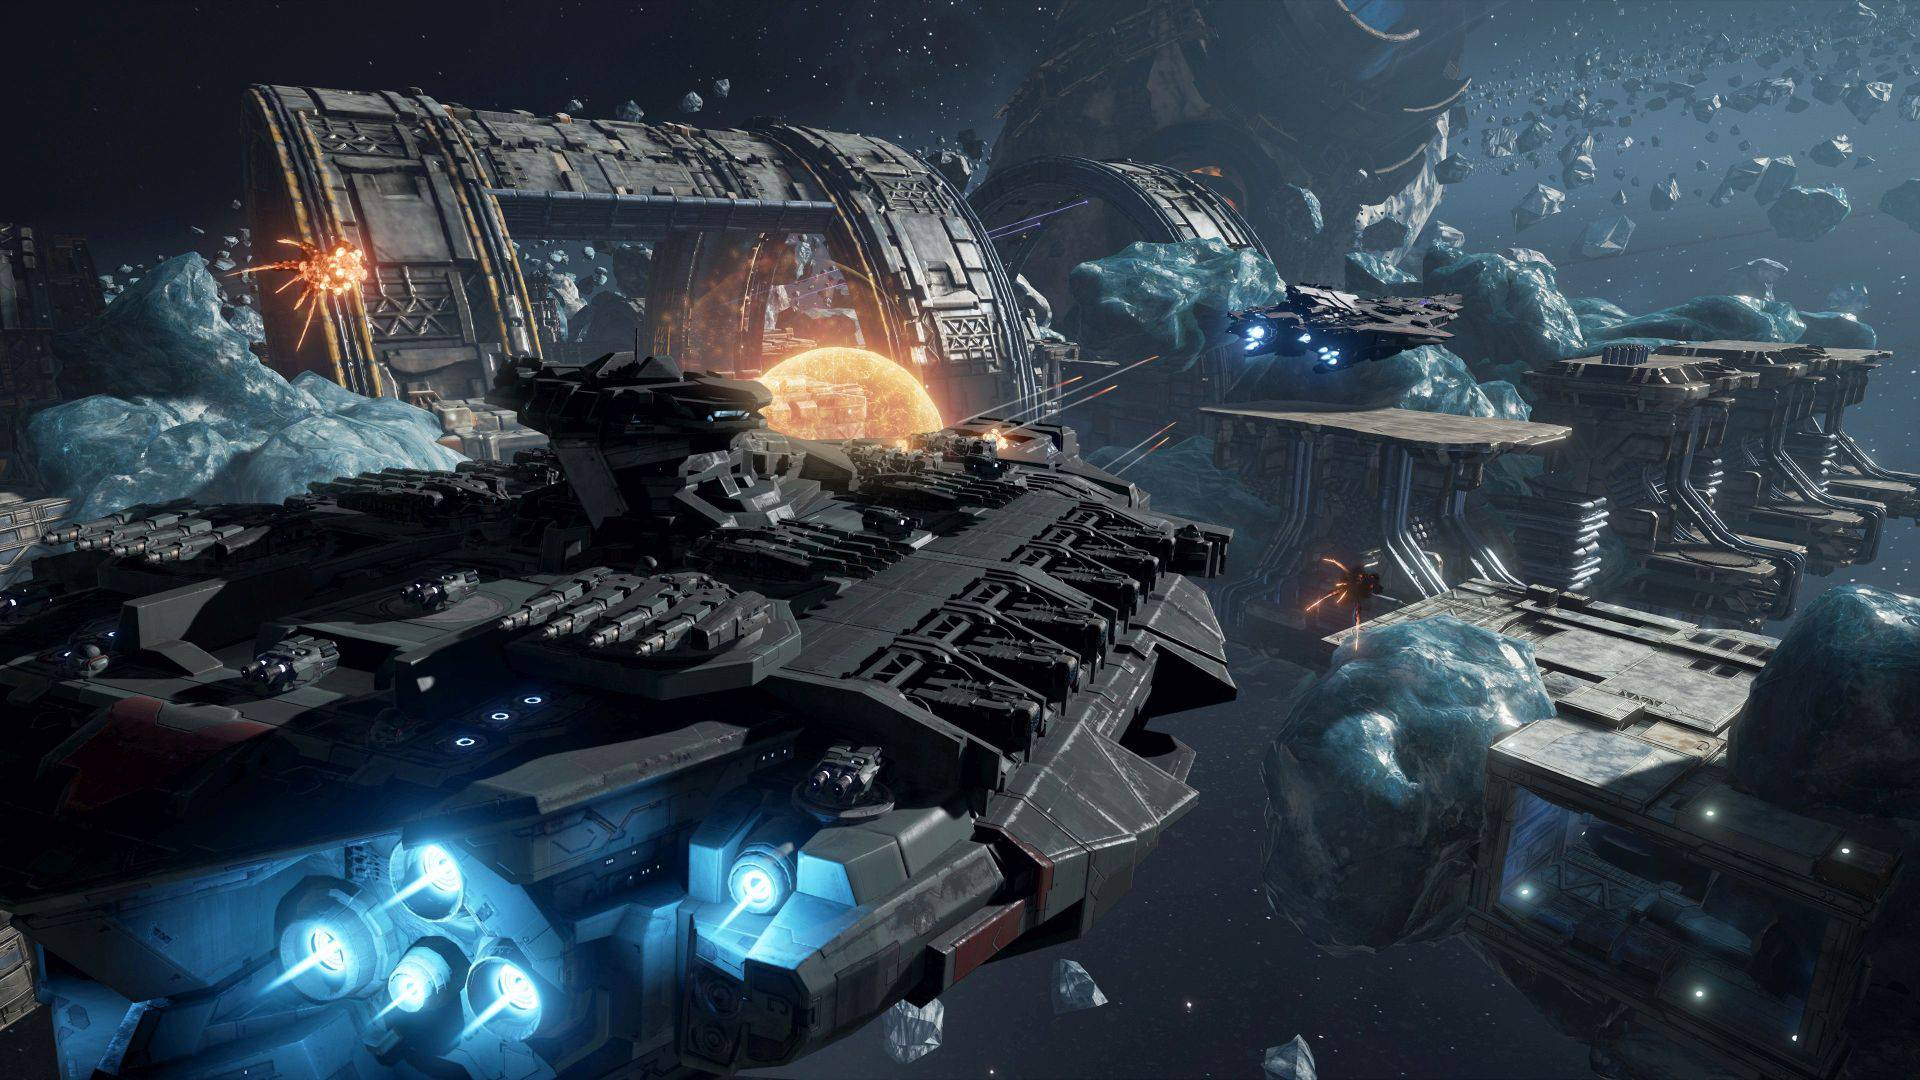 Dreadnought Space